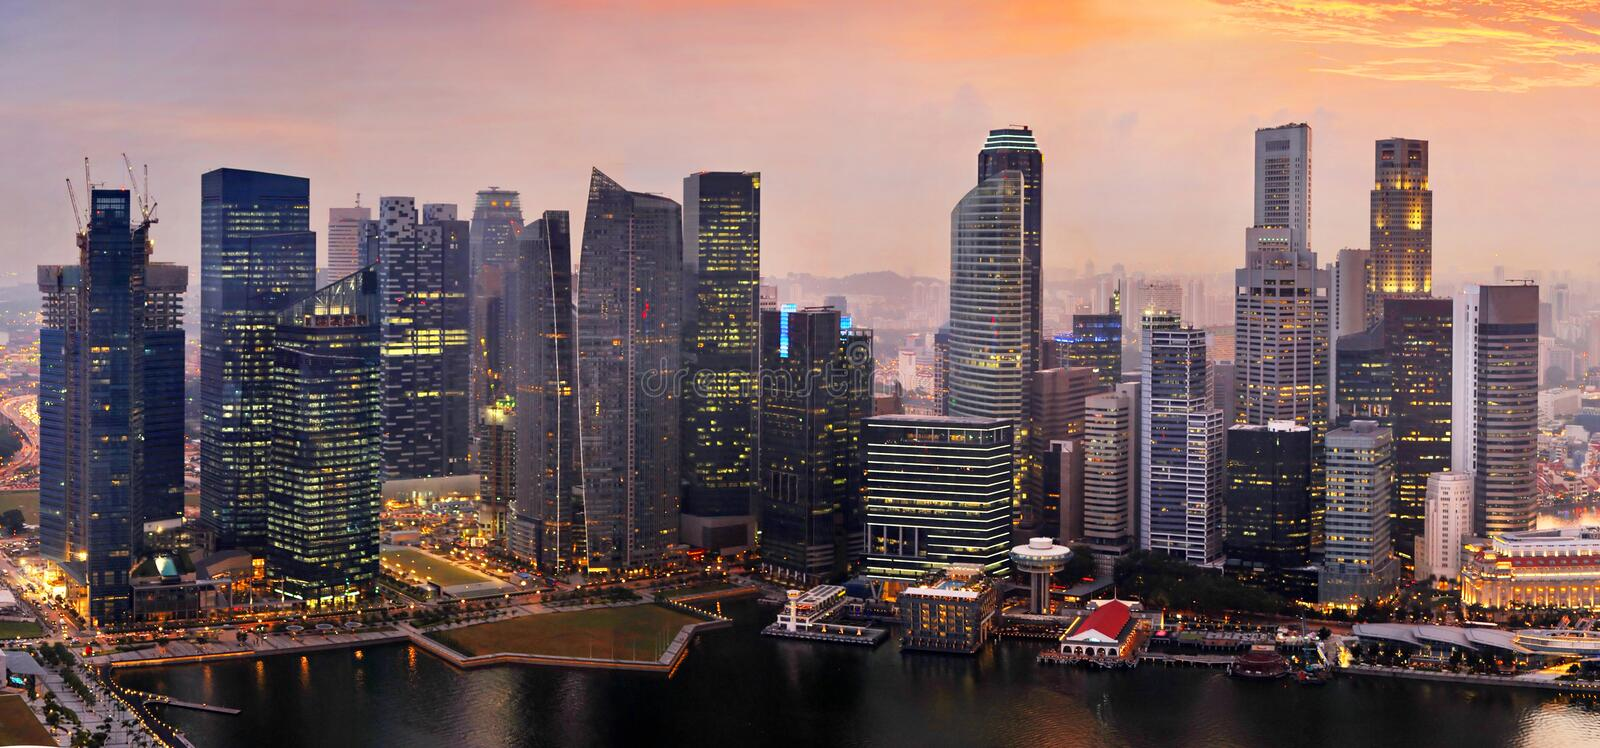 Download Singapore at sunset stock image. Image of corporate, architecture - 20183327